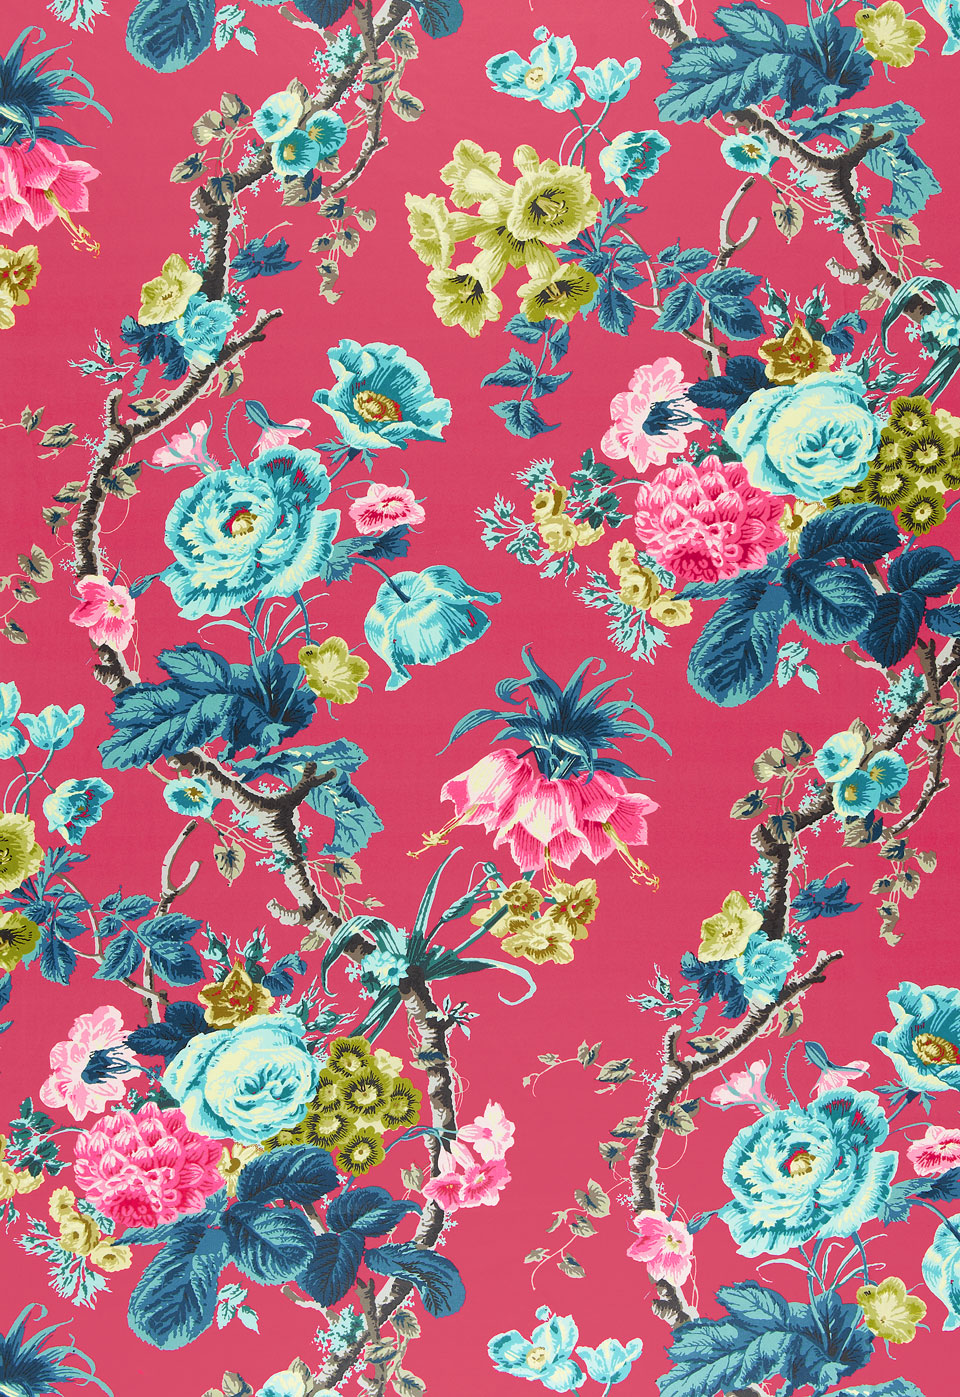 STYLEBEAT THE BLOOM IS ON THE ROSE THE RETURN OF CHINTZ